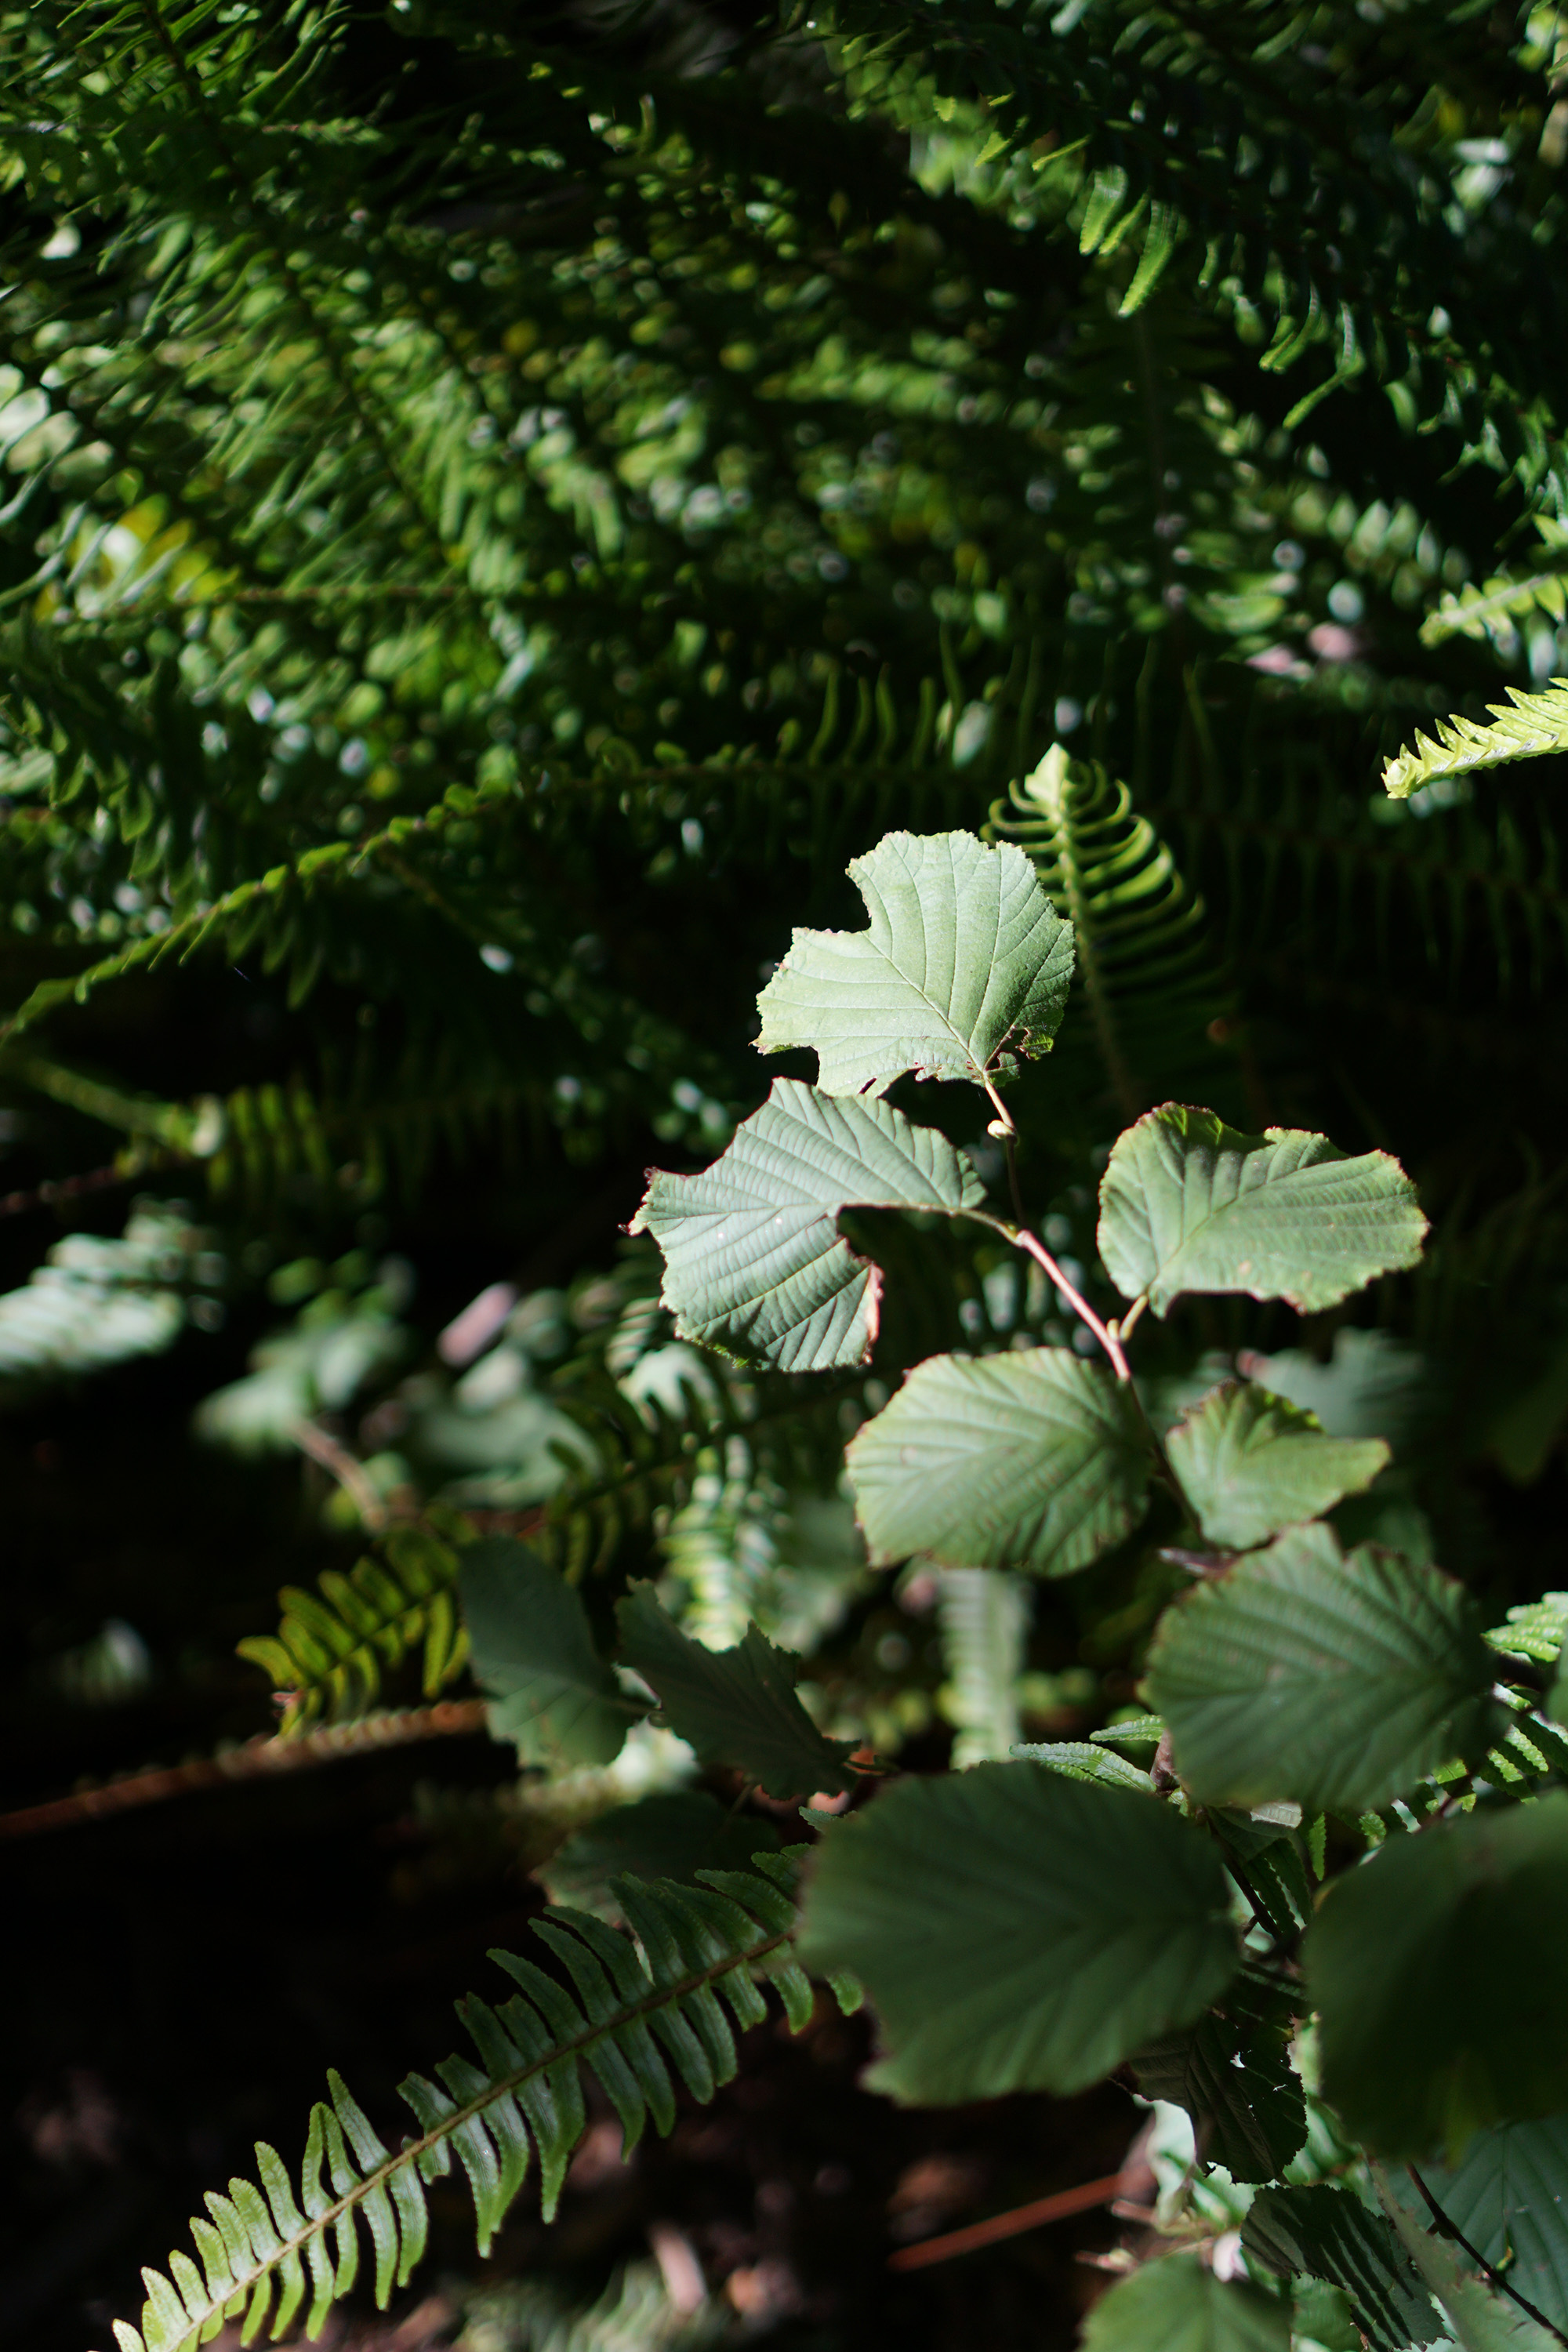 Plants in dappled sunlight, San Francisco Botanical Garden / Darker than Green